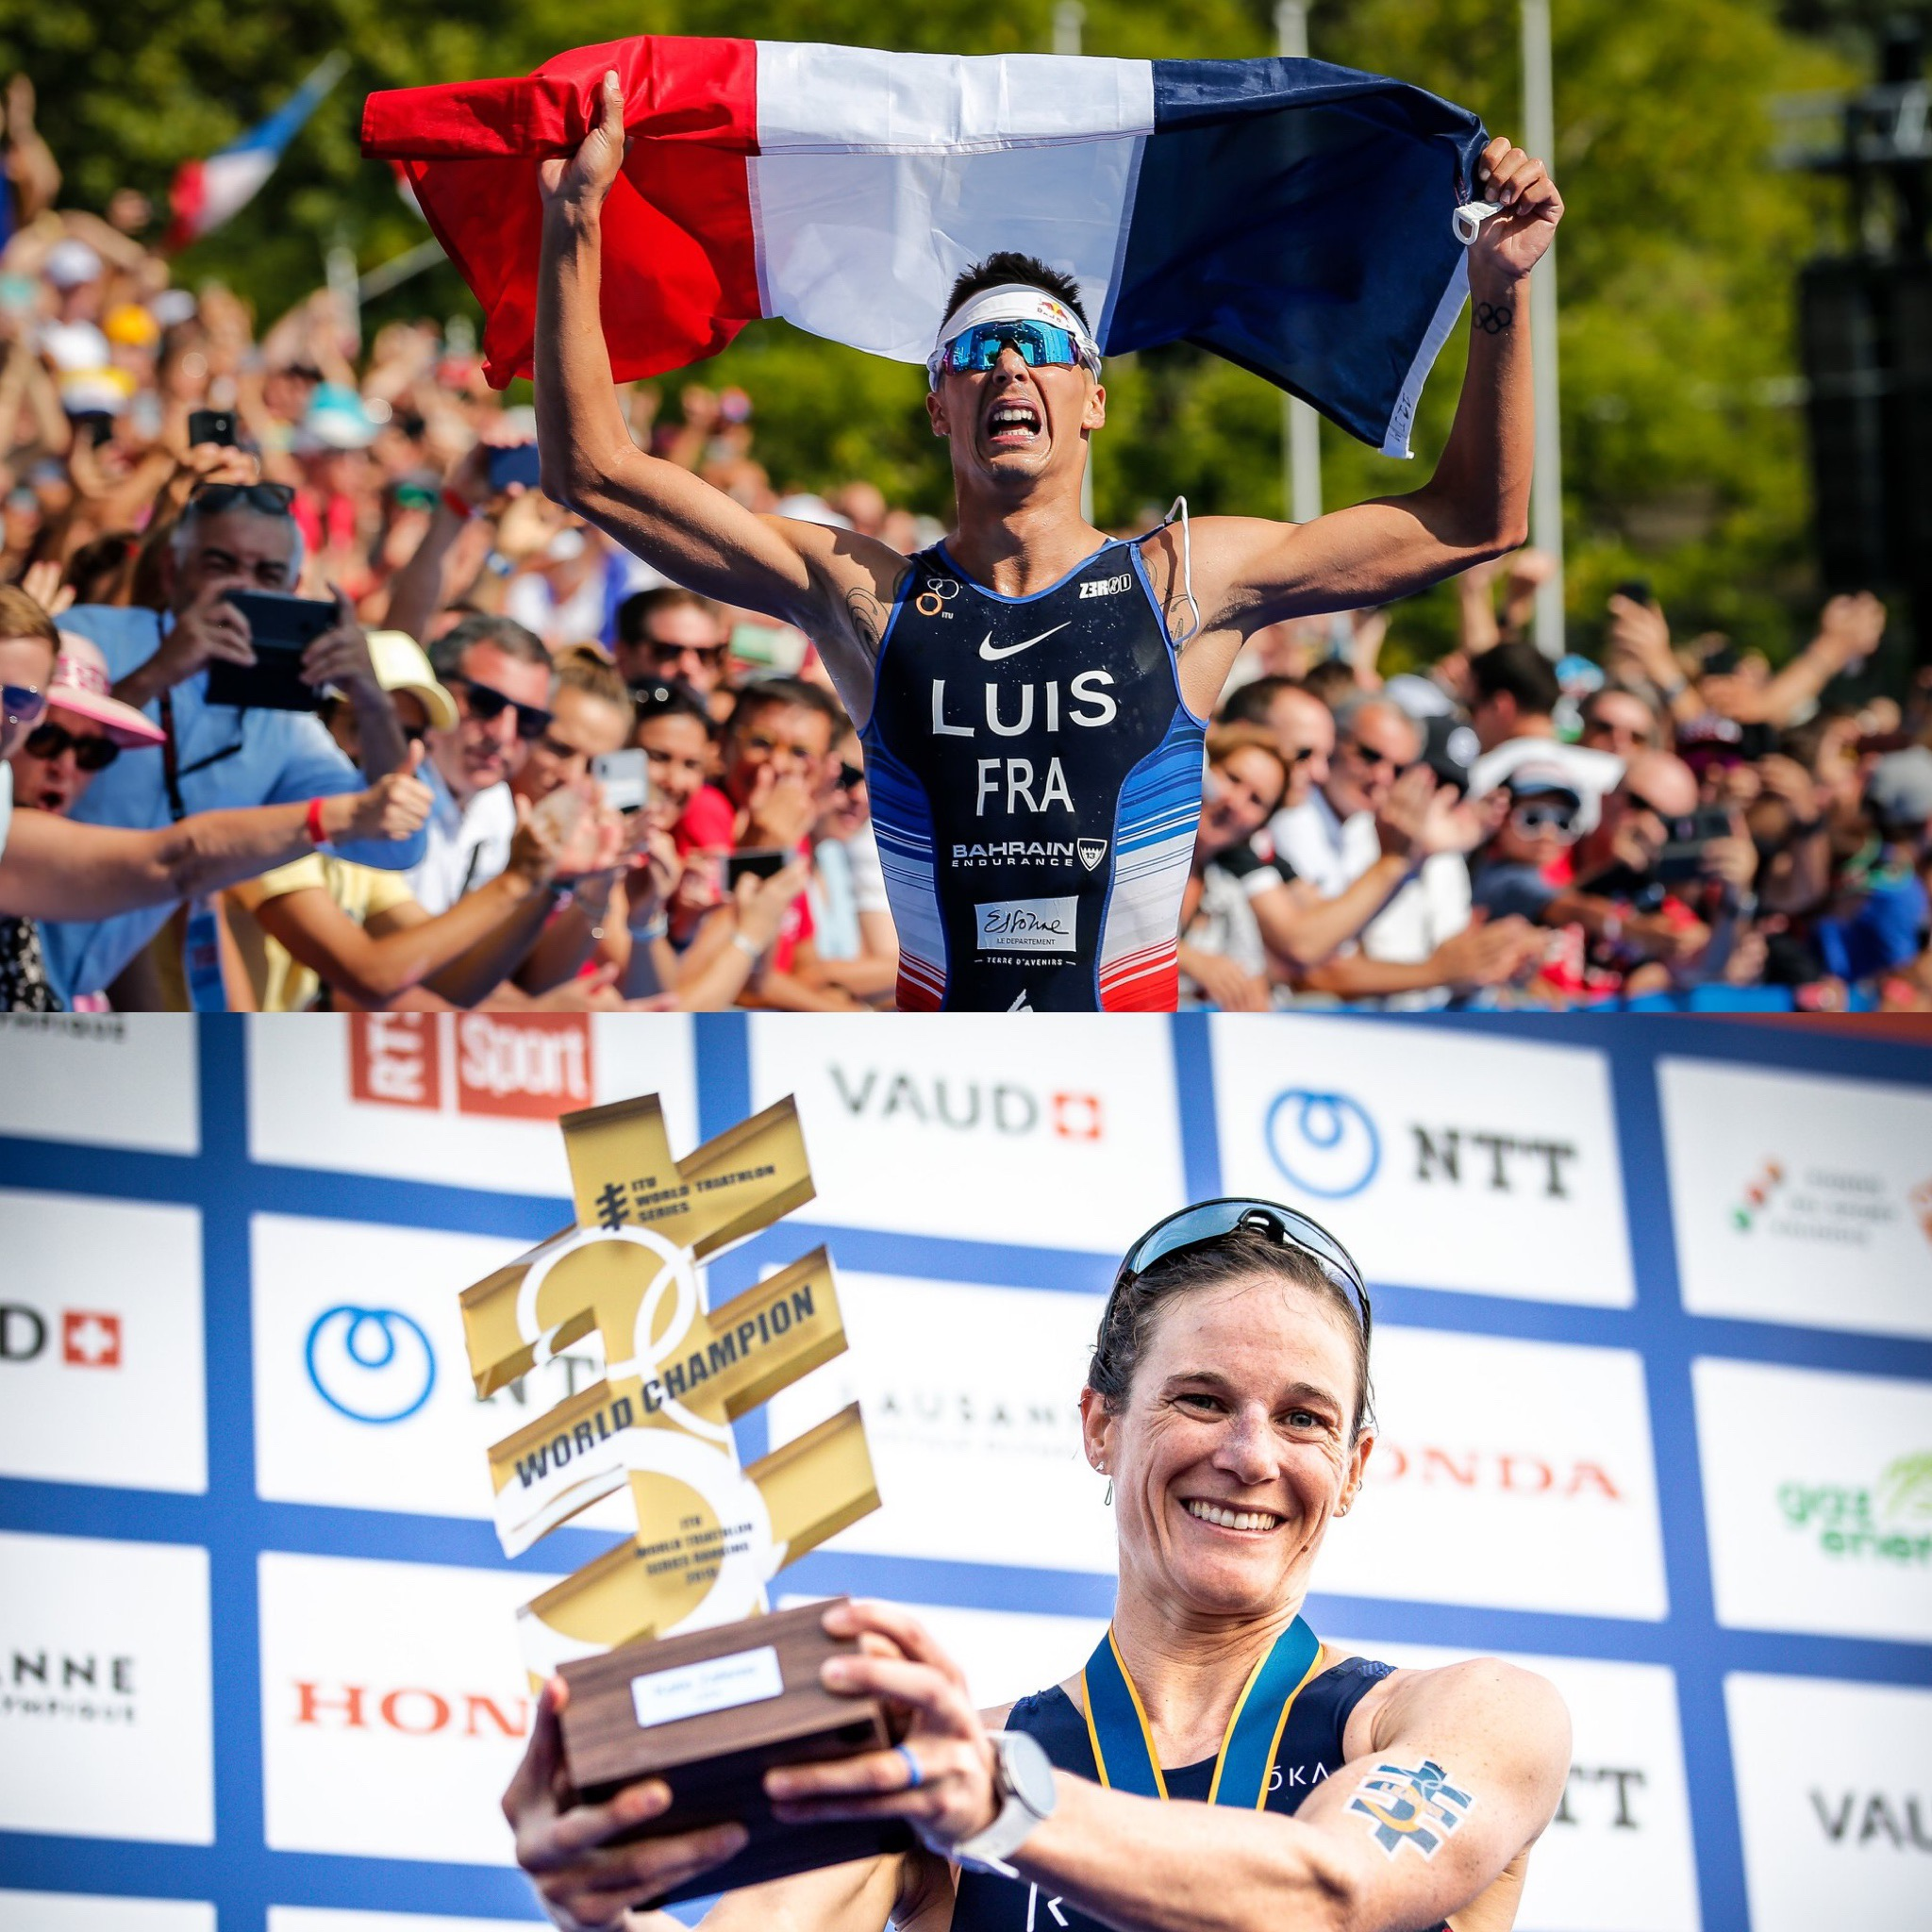 Vincent Luis and Katie Zaferes, 2019 ITU World Champions